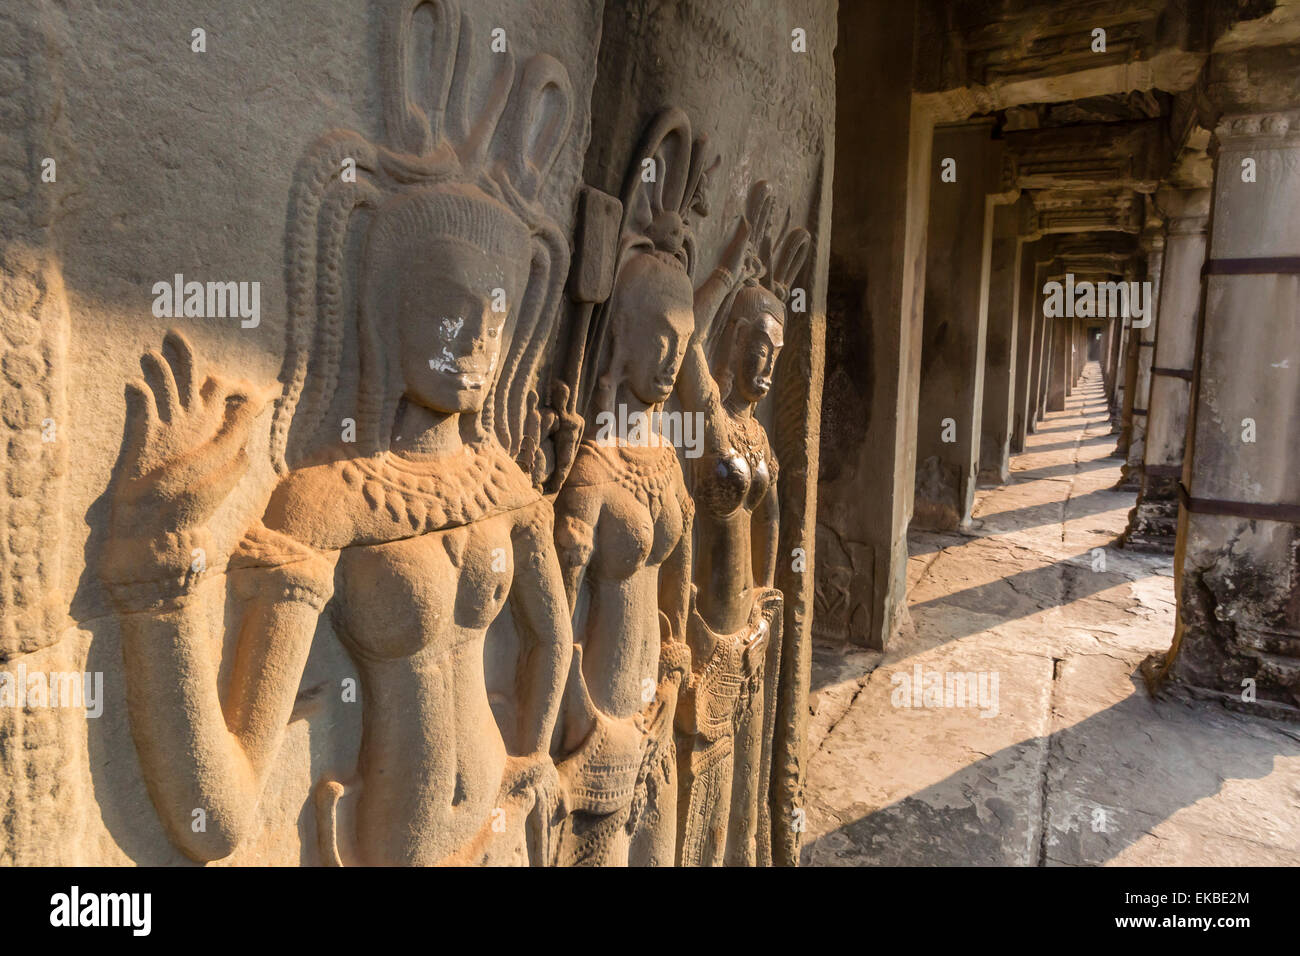 Bas relief carvings of apsara angkor wat unesco